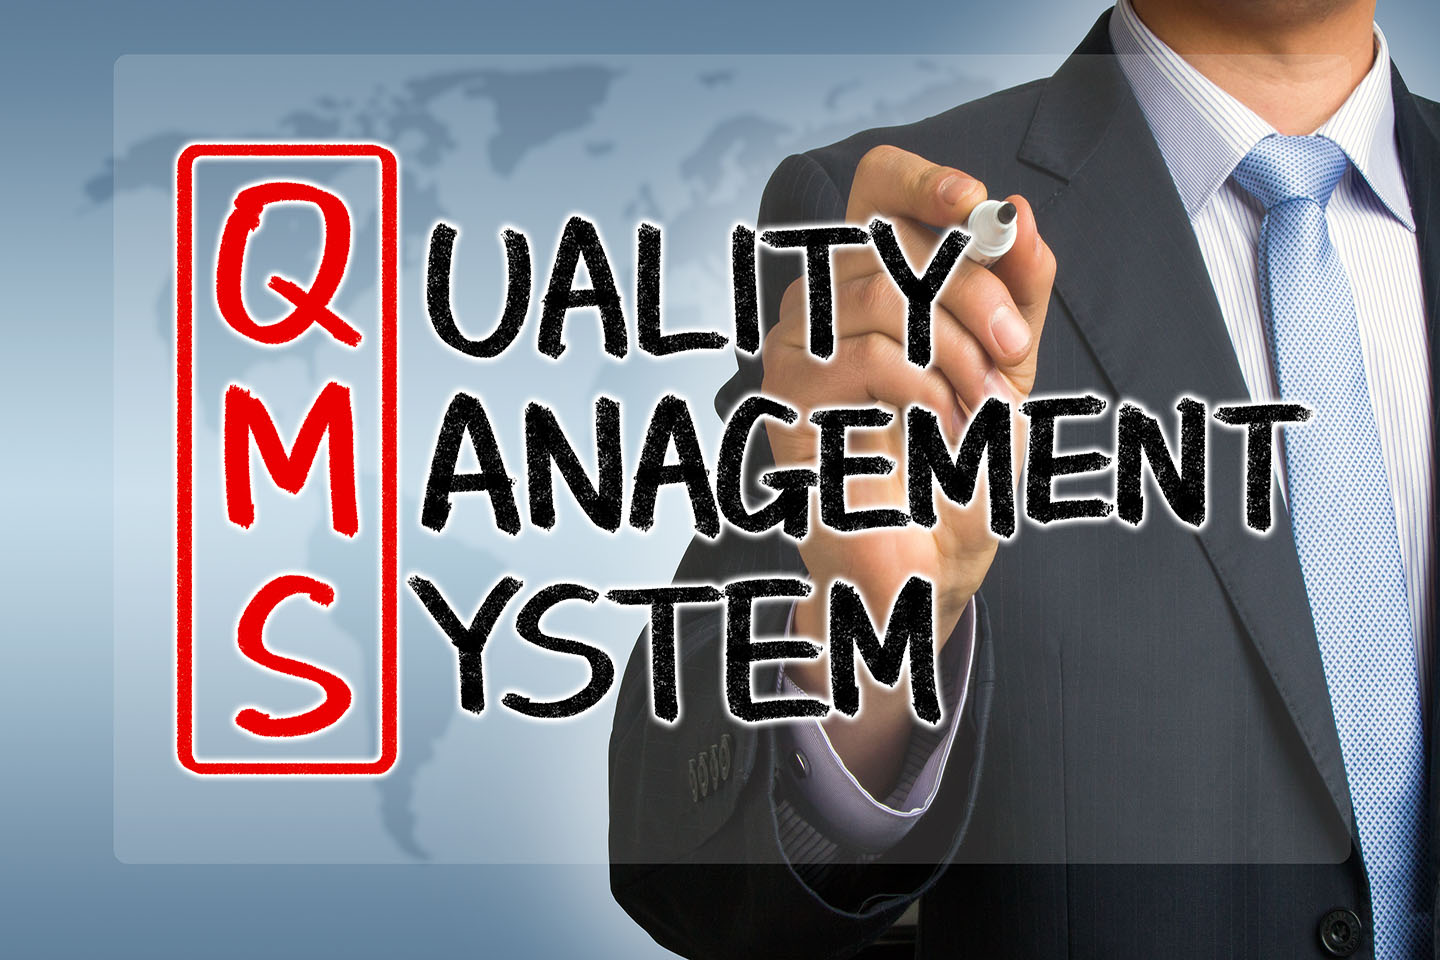 Adopt Quality Management Systems: Be future ready